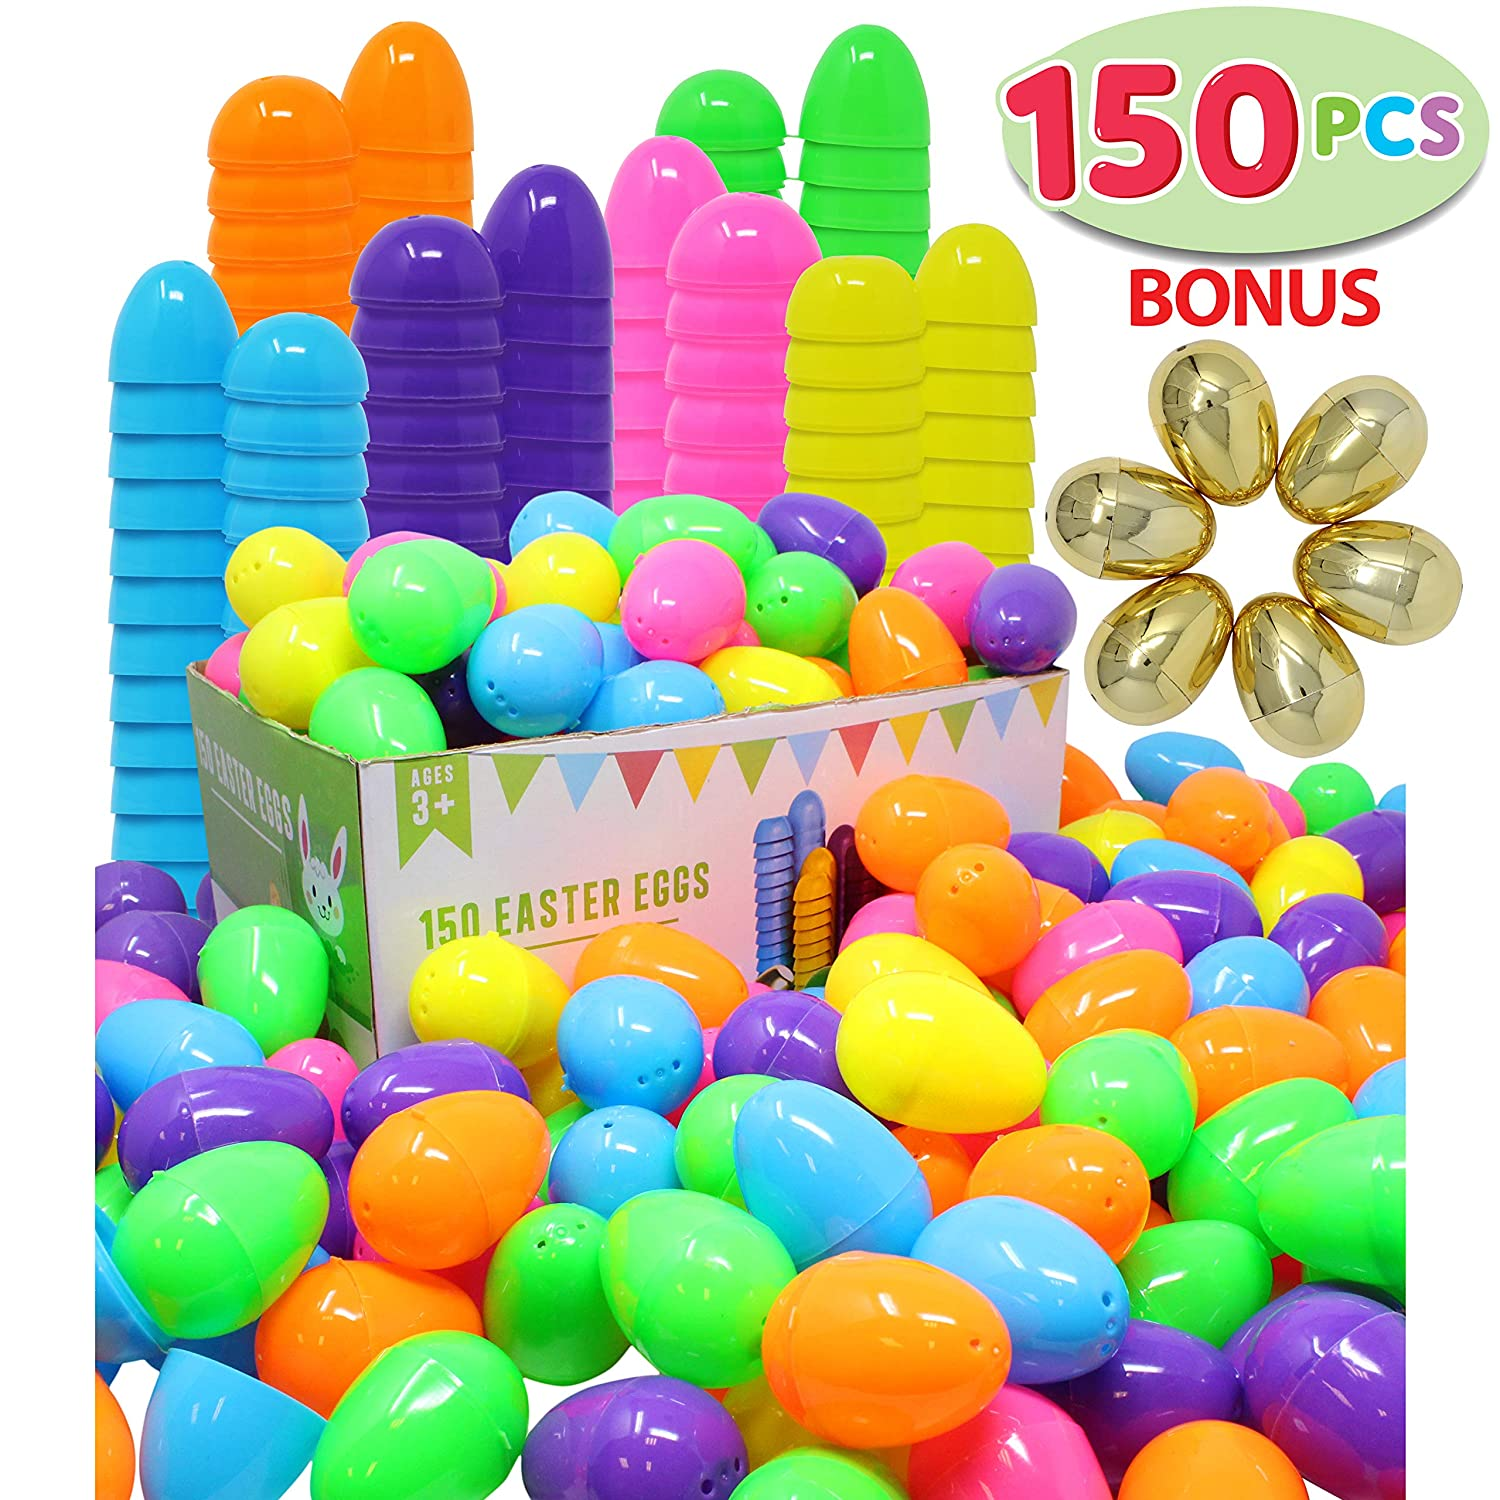 6 Golden Eggs for Filling Specific Treats Basket Stuffers Filler 144 Pieces 2 3//8 Easter Eggs Classroom Prize Supplies by Joyin Toy Joyin Inc Easter Eggs Hunt Easter Theme Party Favor